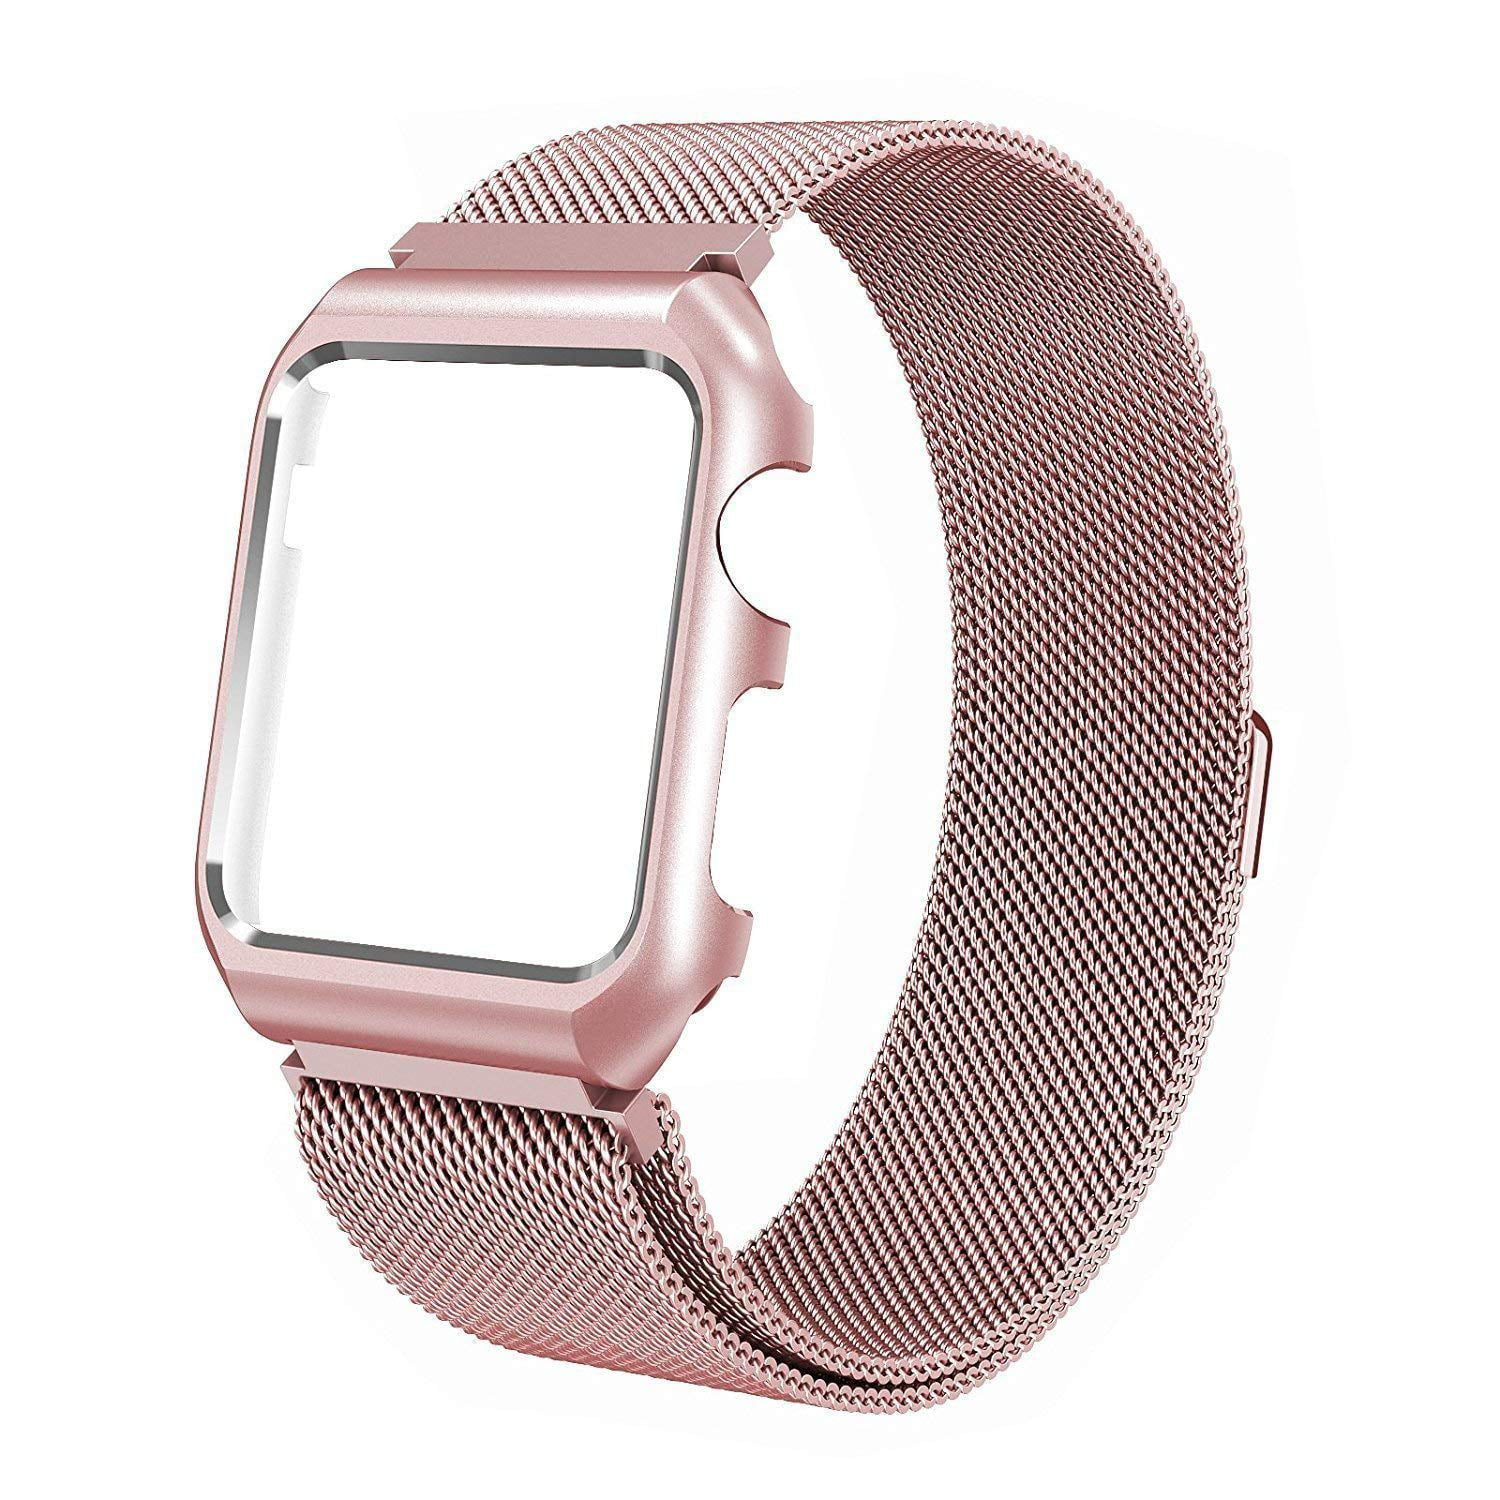 Coverlab Coverlab Replacement Apple Watch Band With Case 38mm Stainless Steel Mesh Milanese Loop With Adjustable Magnetic Closure For Apple Watch Series 3 2 1 Rose Gold Walmart Com Walmart Com